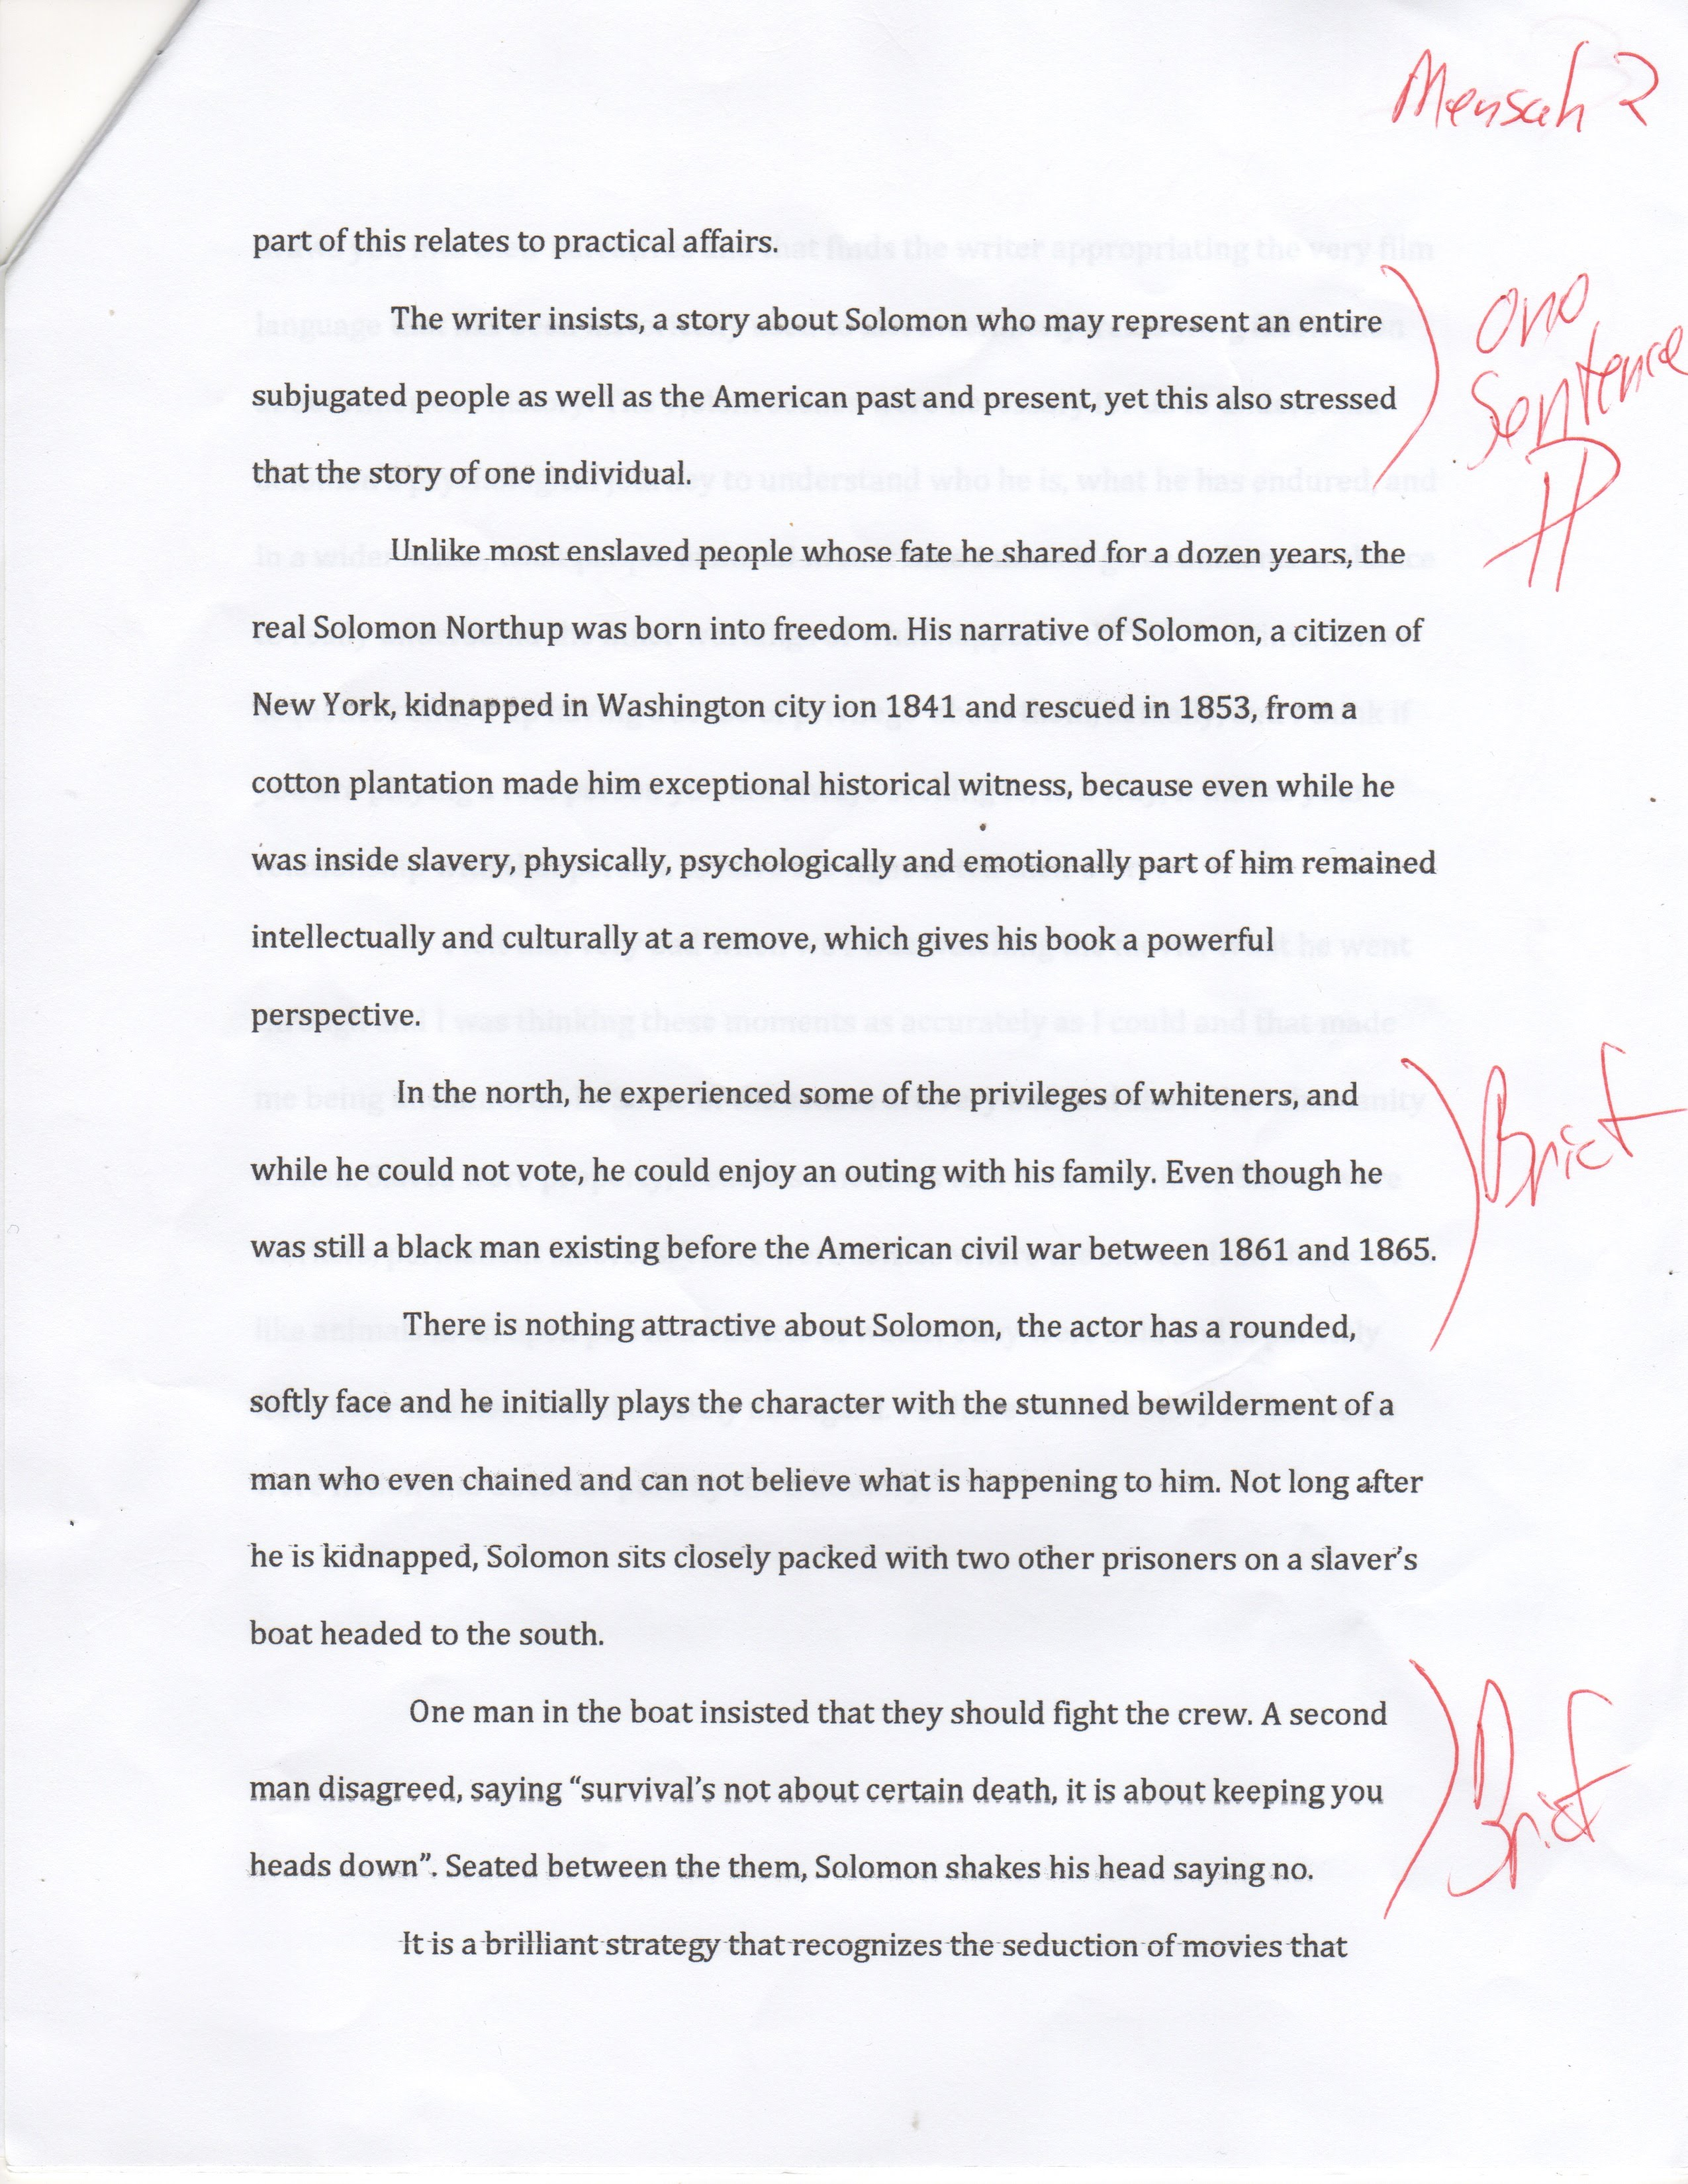 exemplification essay topics topics for exemplification essay  essay topics on media essay topics on media our work media essay essay topics on media